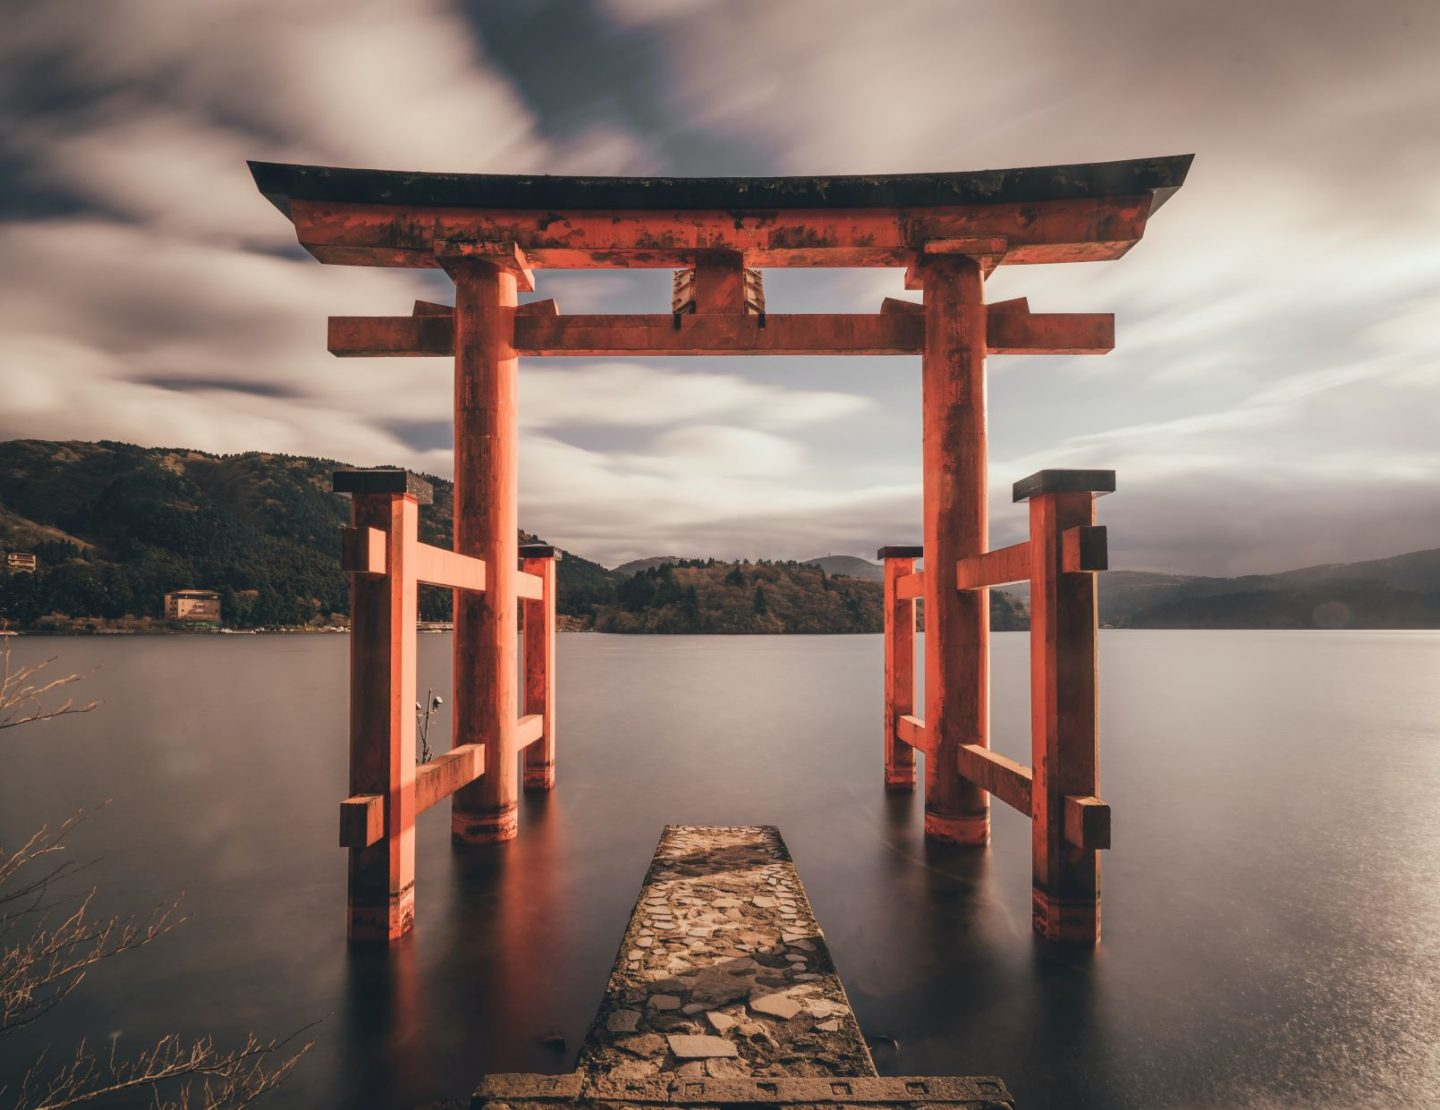 Geographical quiz questions and answers about Asia - Japan